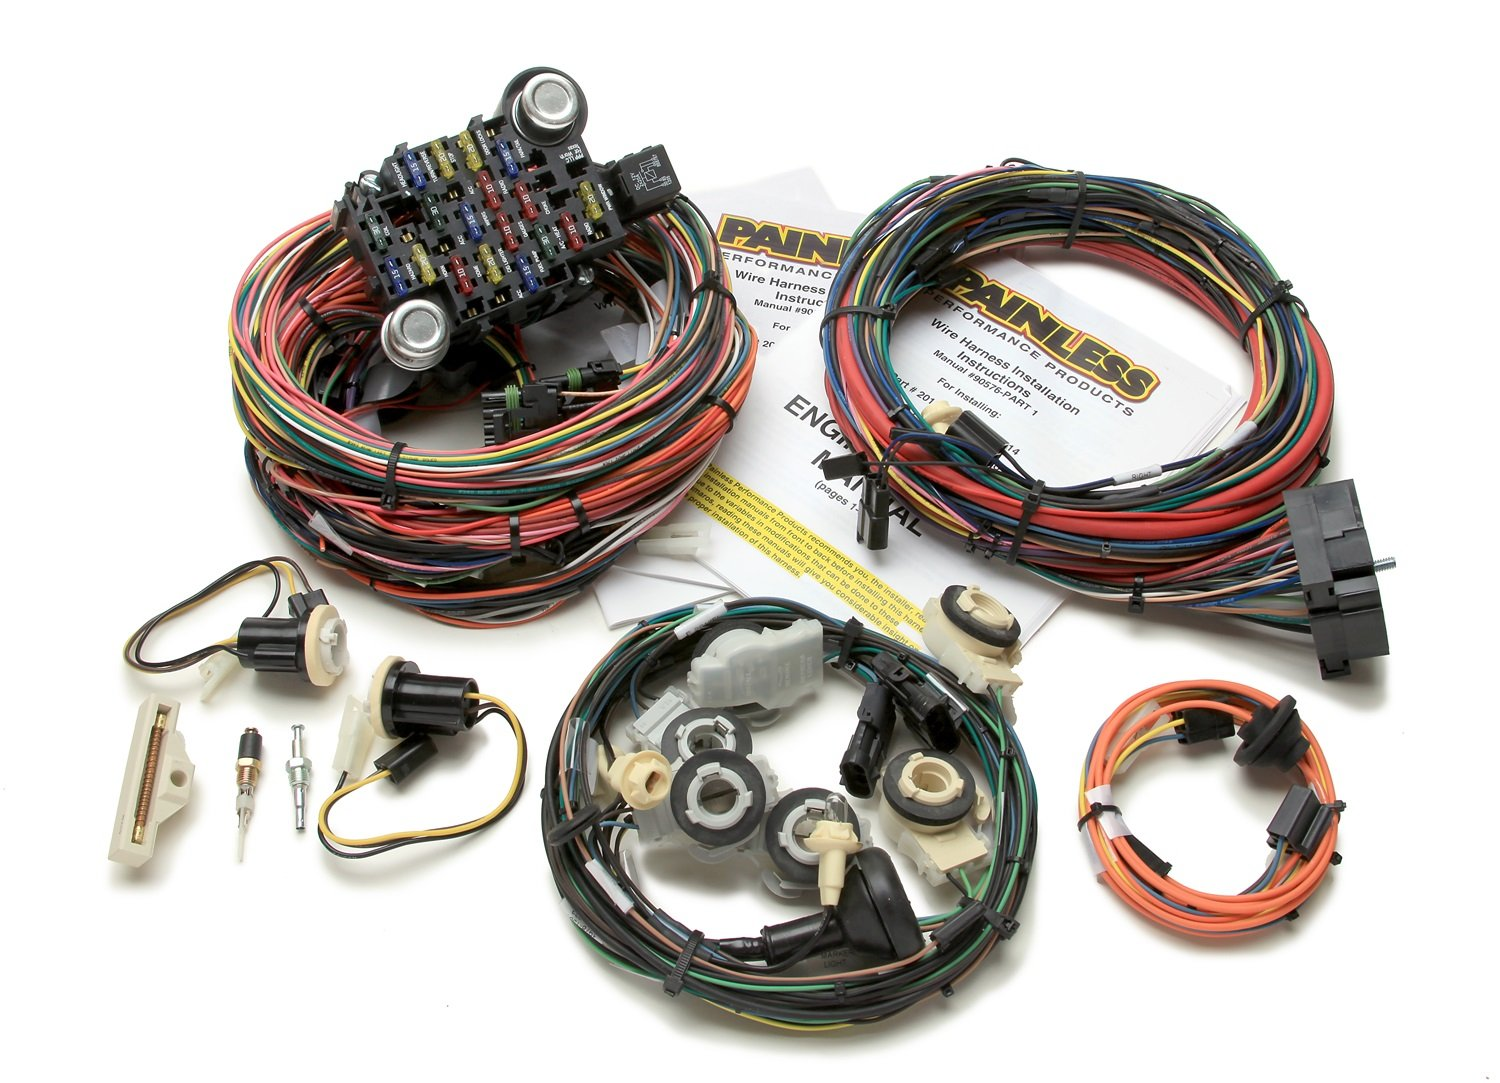 Led Wiring Harness Painless Library John Deere 5105 Diagram Amazoncom 20114 Automotive